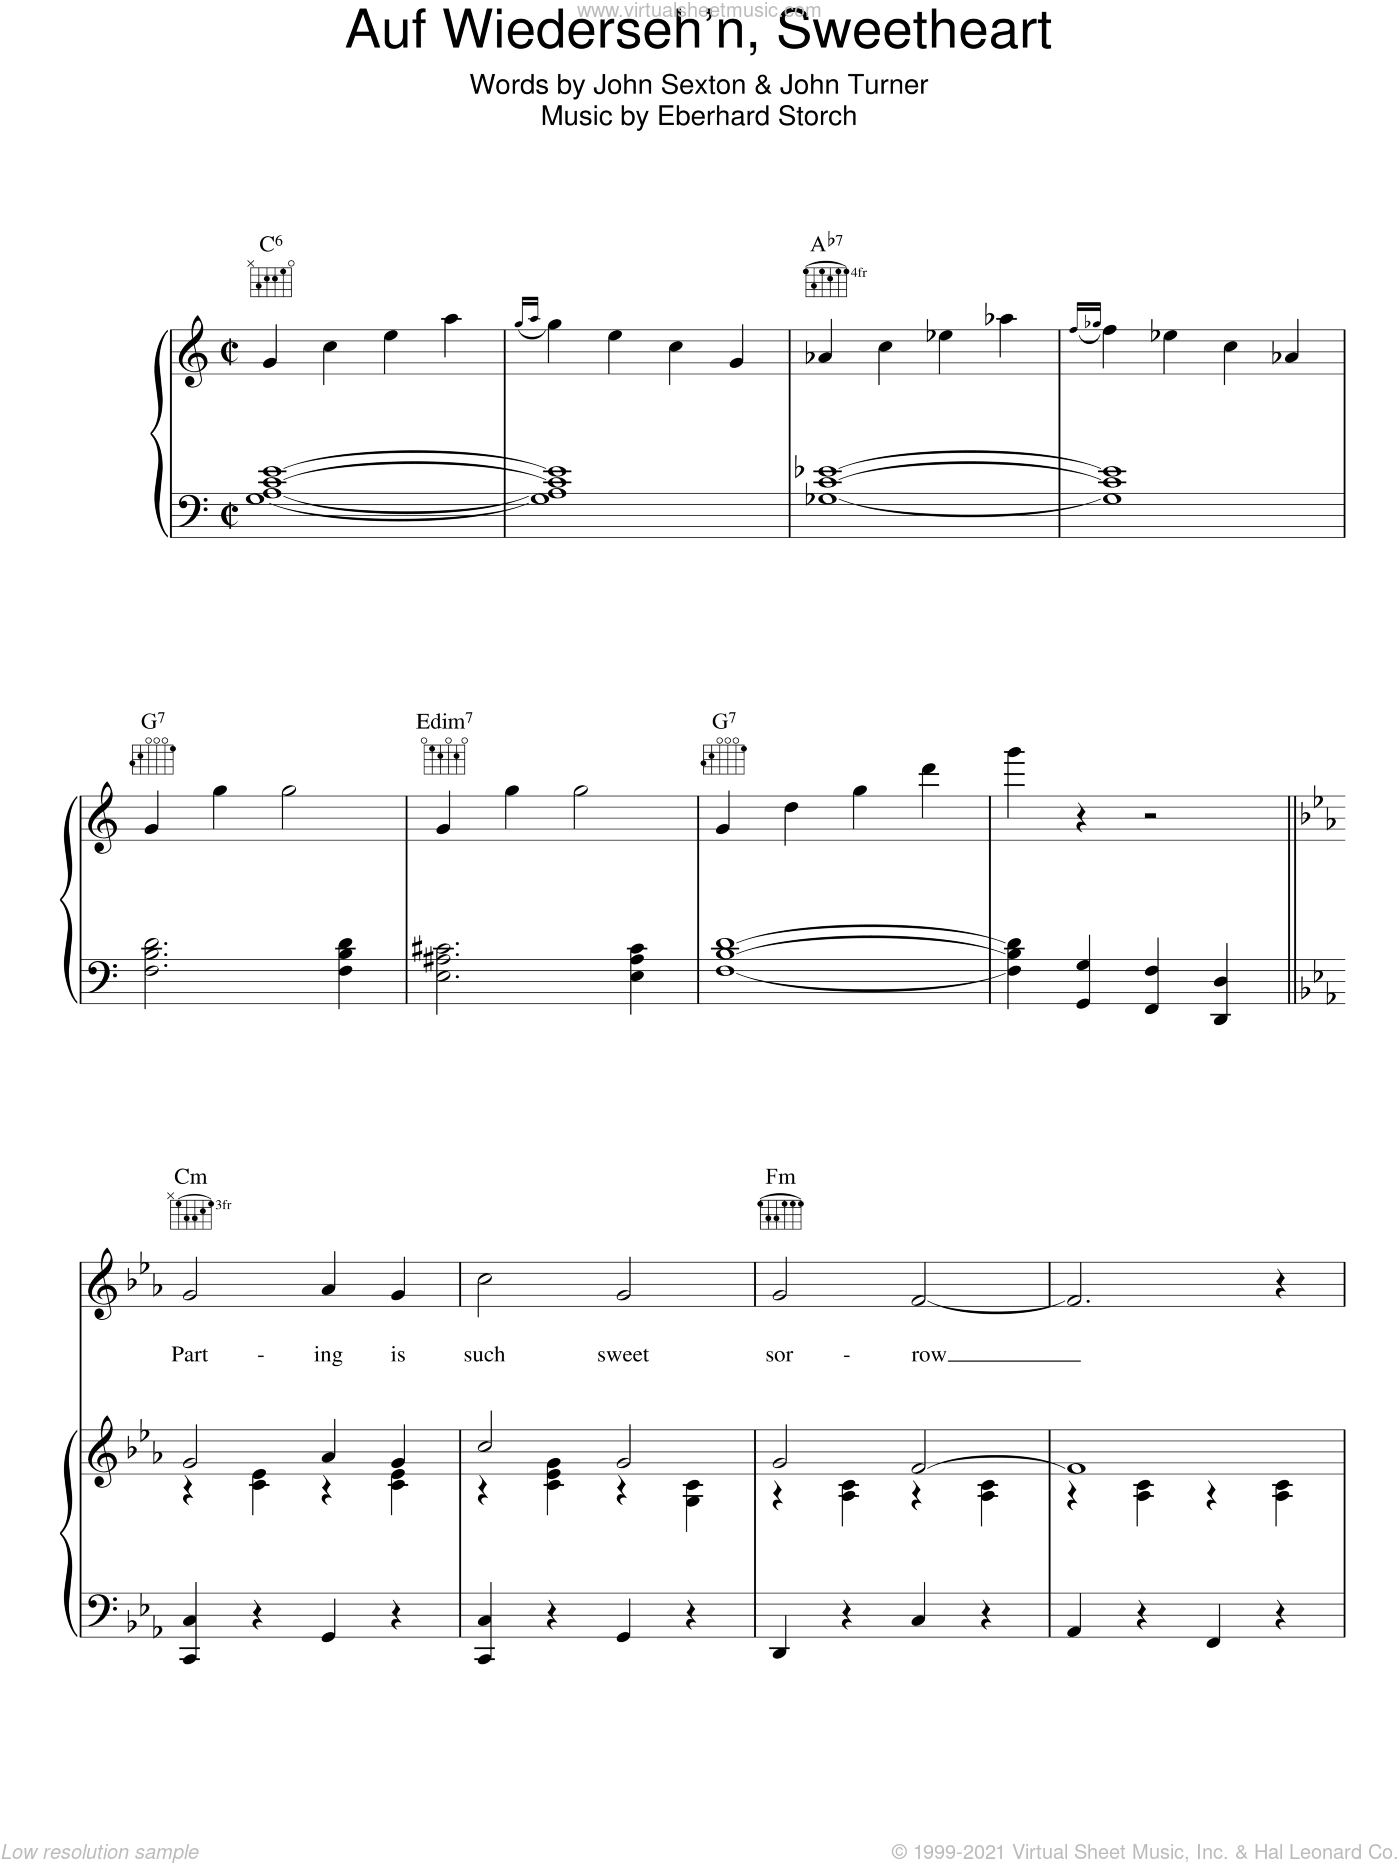 Auf Wiederseh'n, Sweetheart sheet music for voice, piano or guitar by Vera Lynn, Erhard Storch, John Sexton and John Turner, intermediate. Score Image Preview.